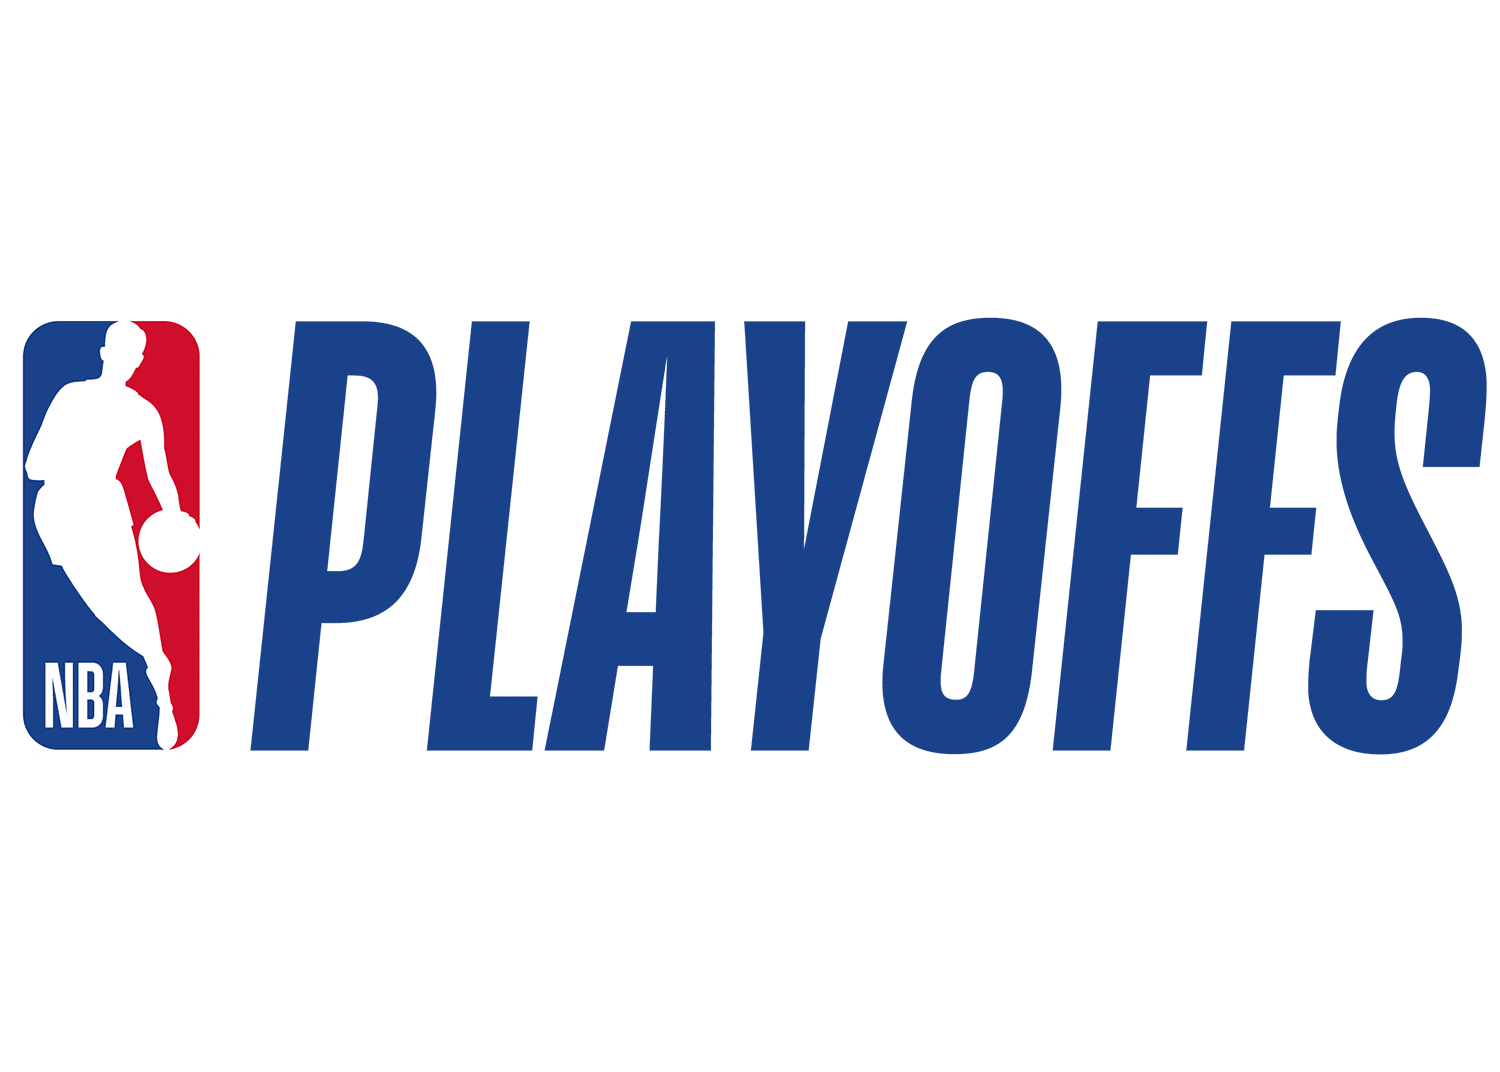 picture about Printable Olympics Tv Schedule identified as NBA Playoff Timetable 2019: Dates, Moments, Television - Athletics Media Look at